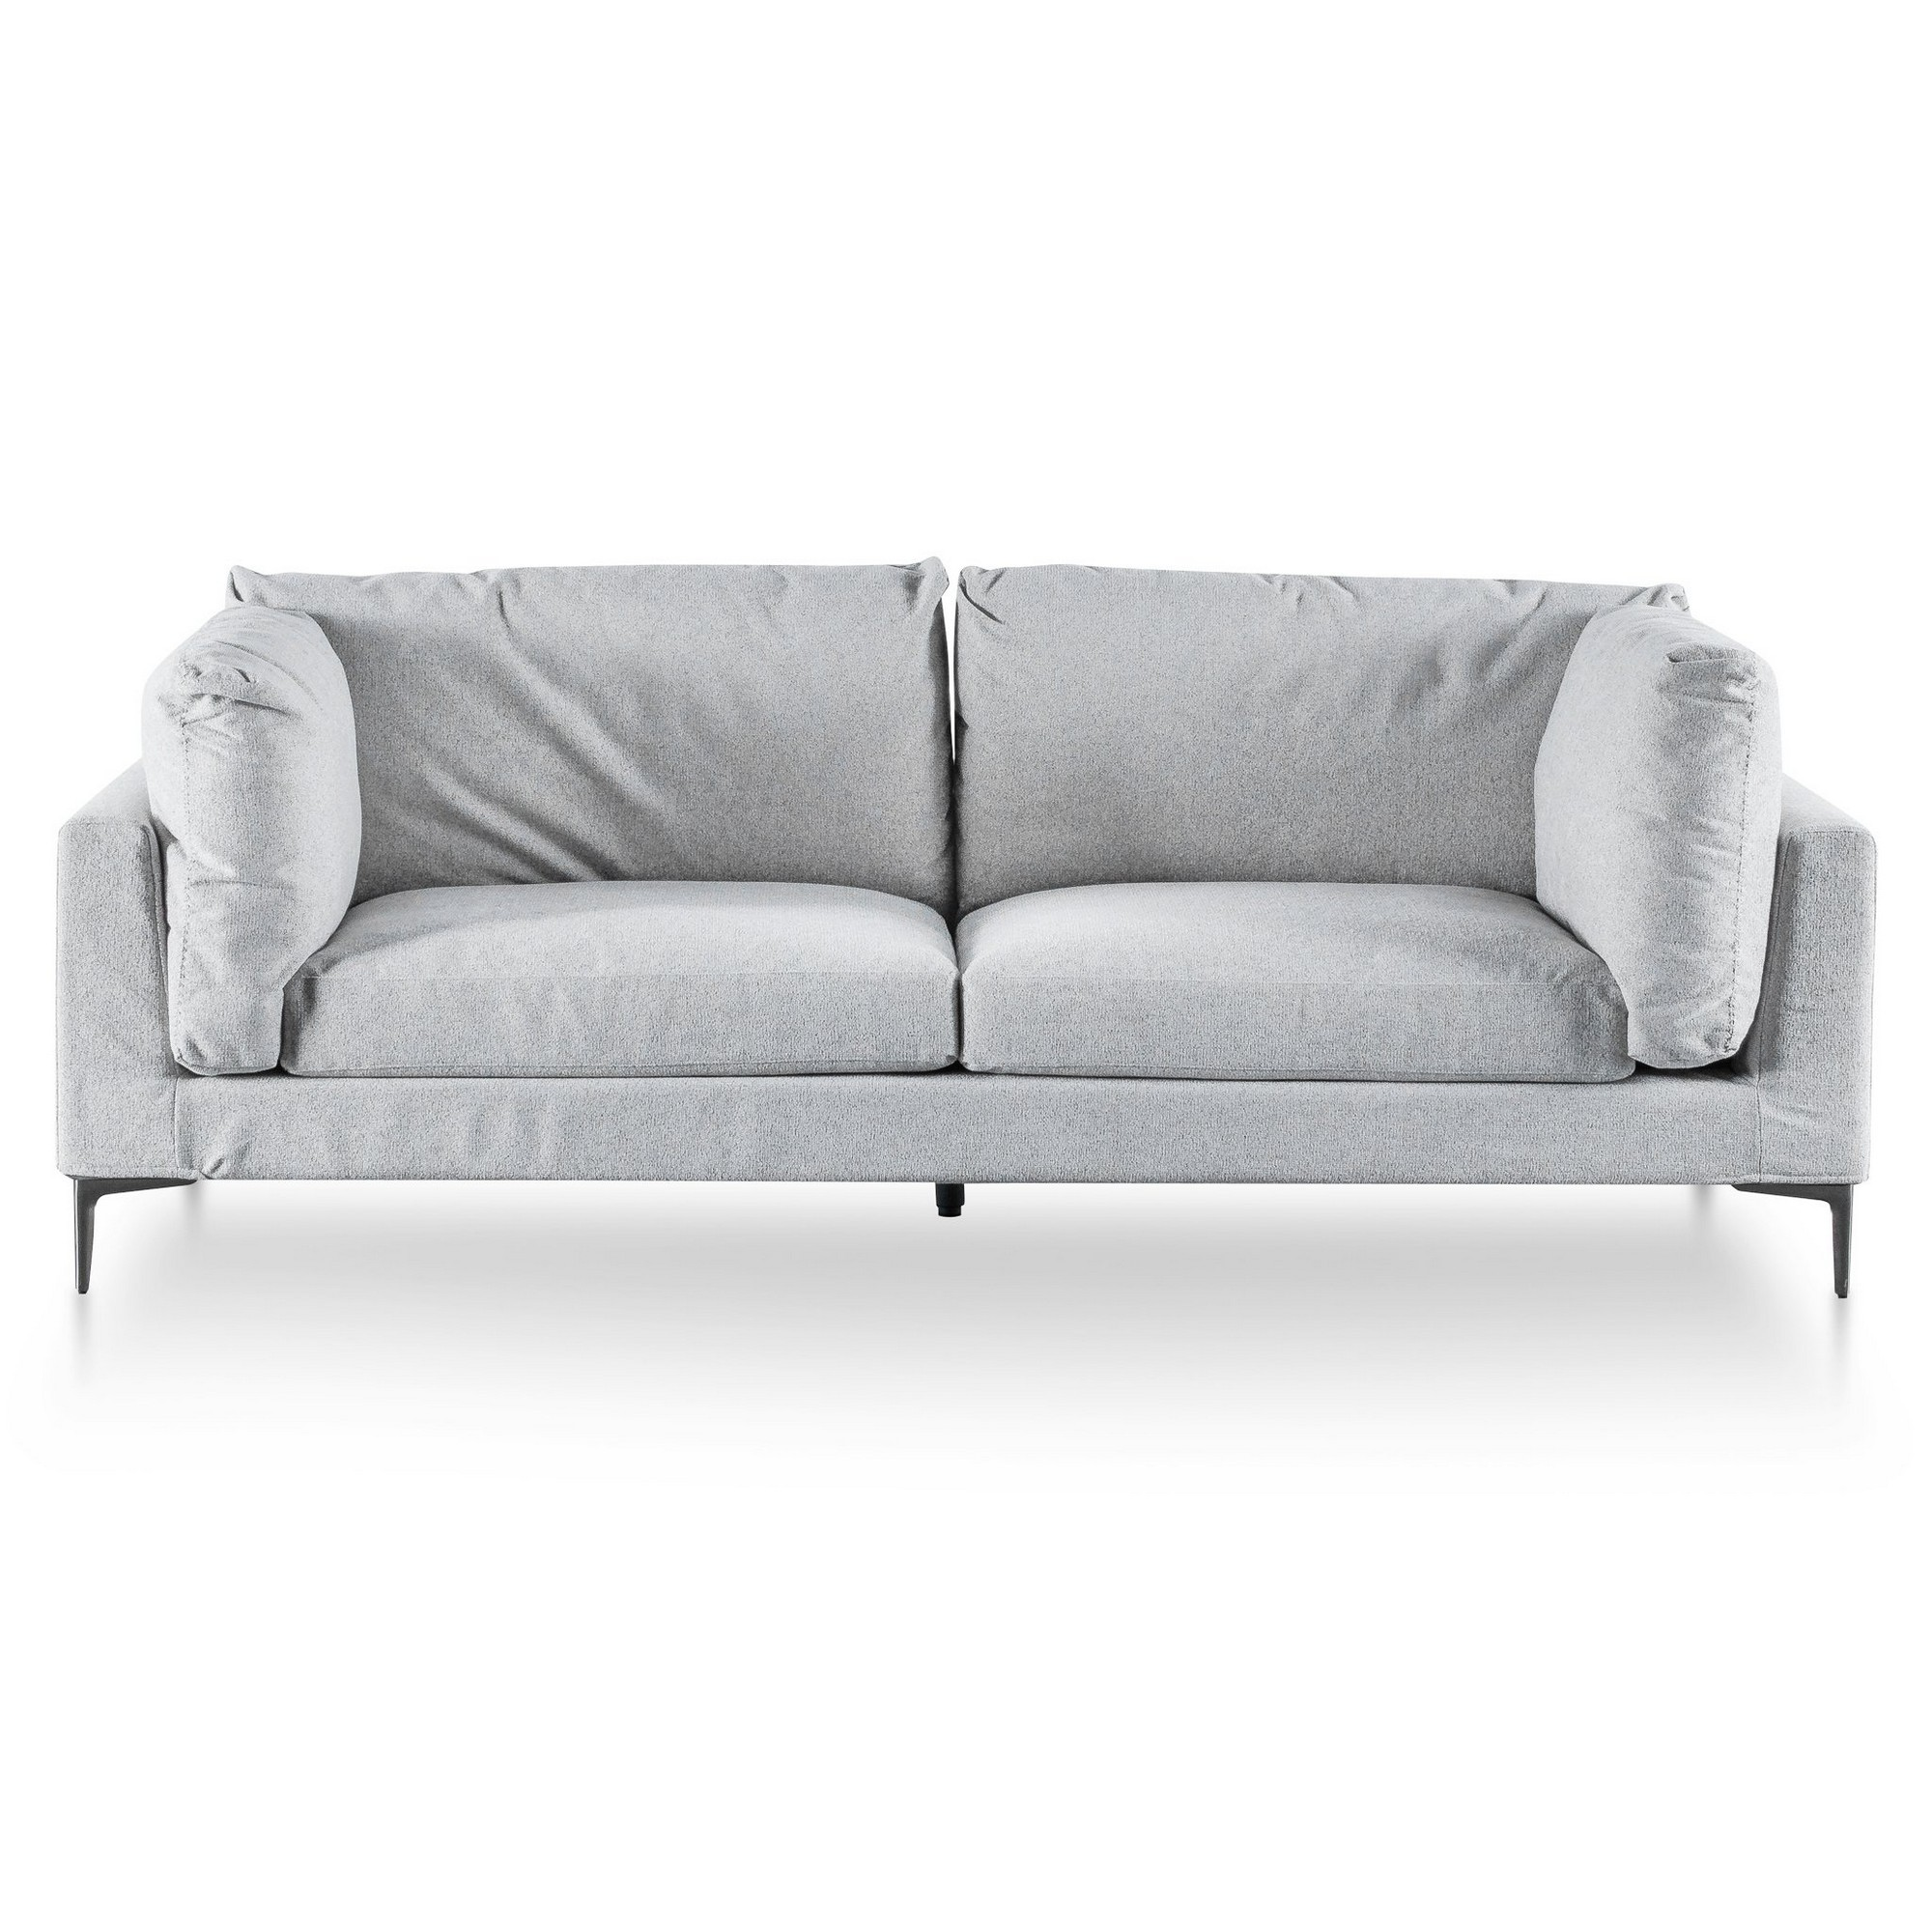 Henley Fabric Sofa, 3 Seater, Gull Grey